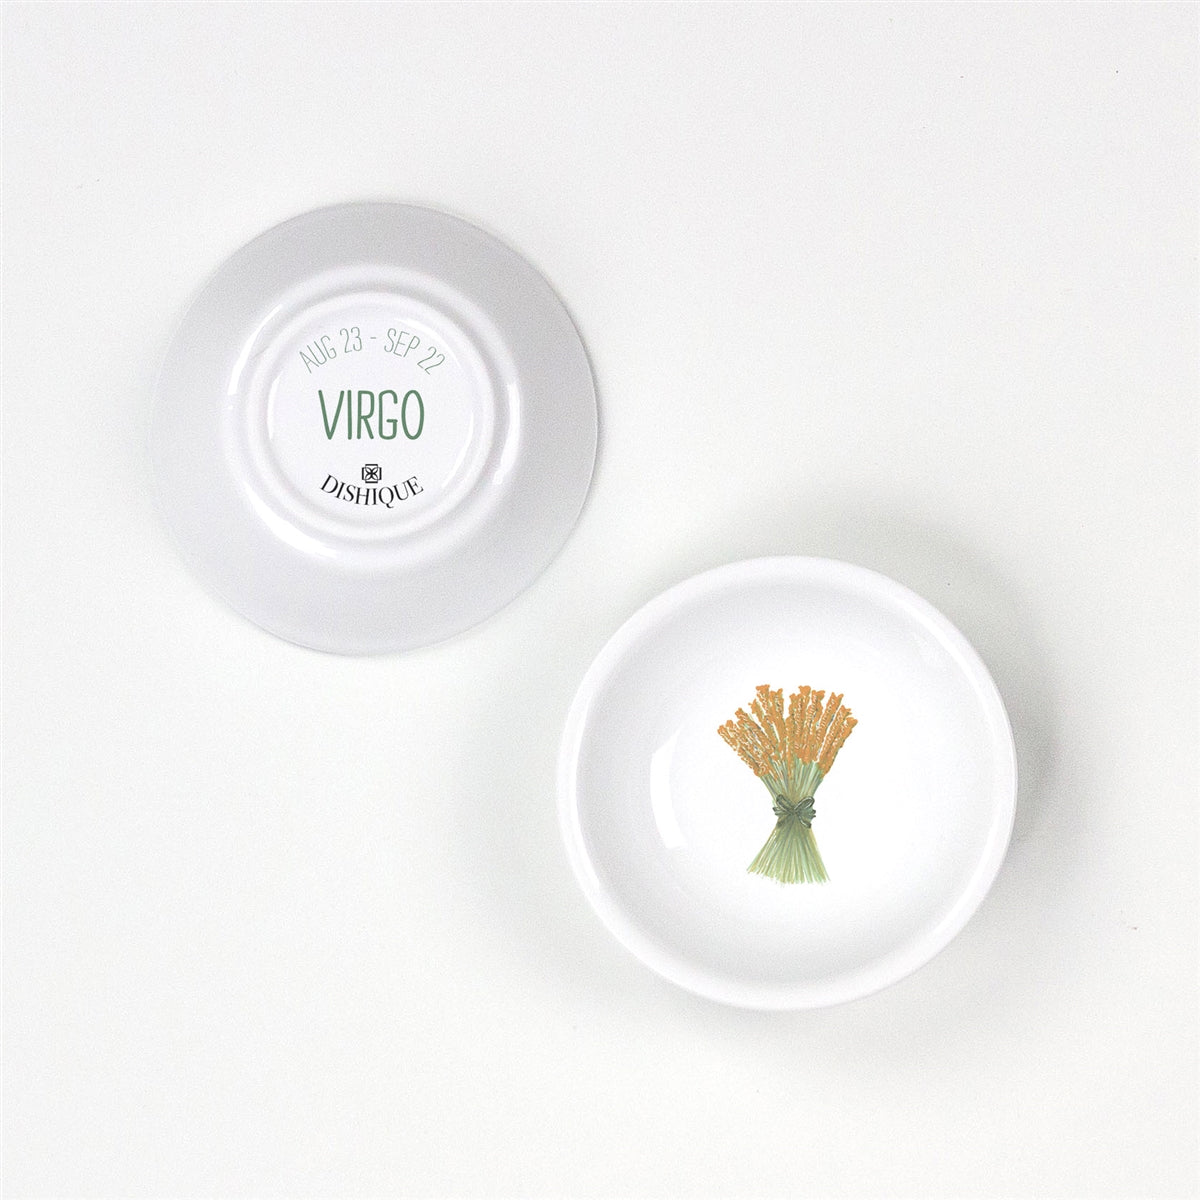 Virgo Ring Dish - Zodiac Gifts